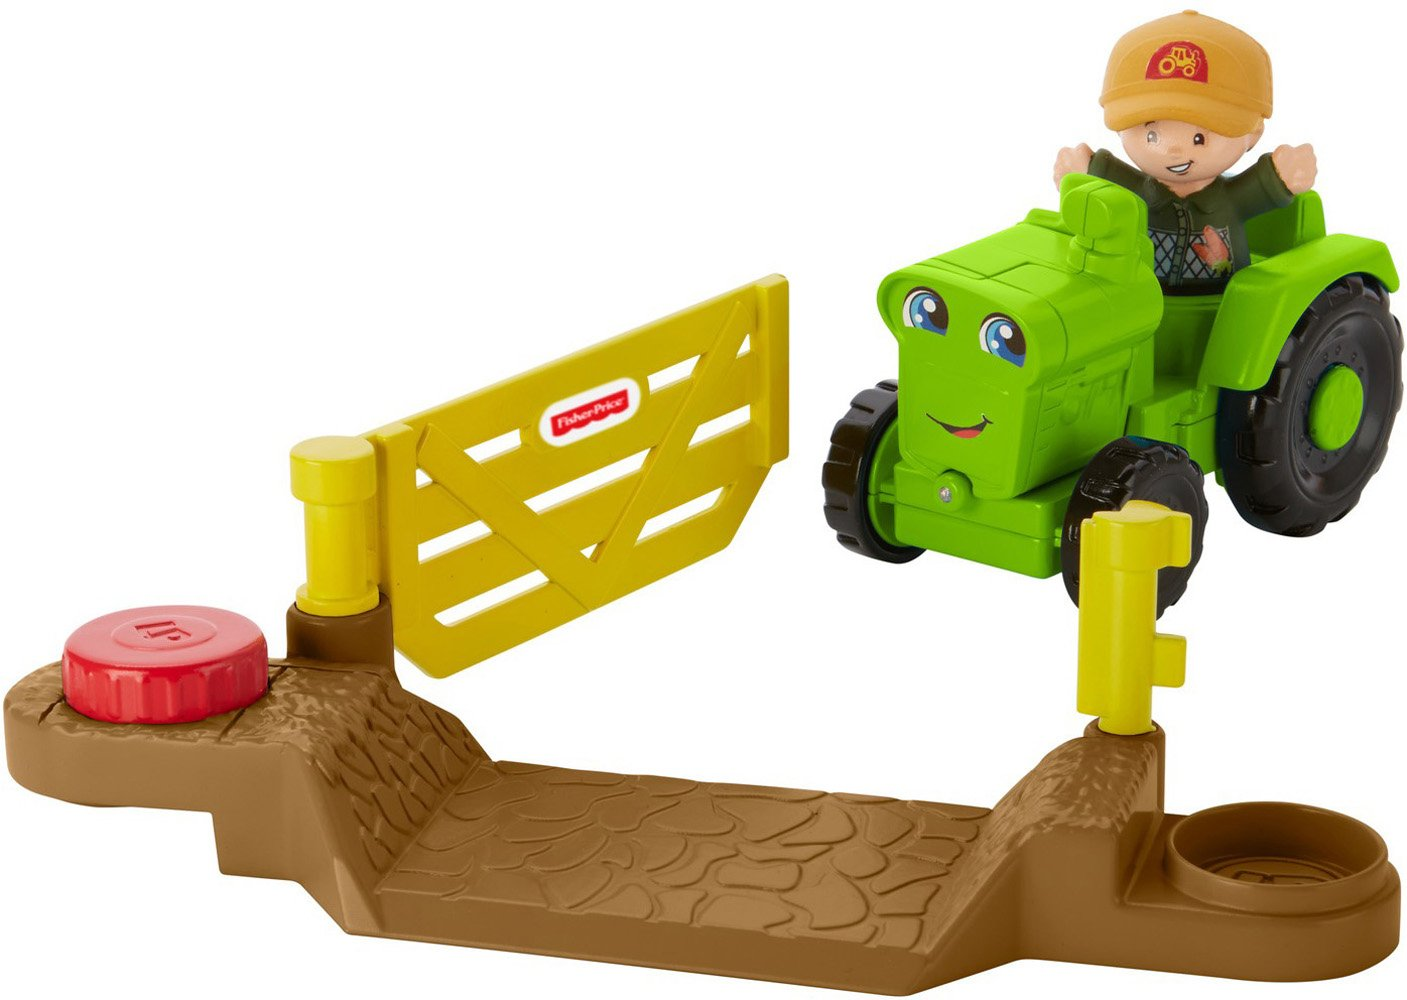 Fisher-Price Little People Traktor Small Vehicle Vert 4 pièces DWC32